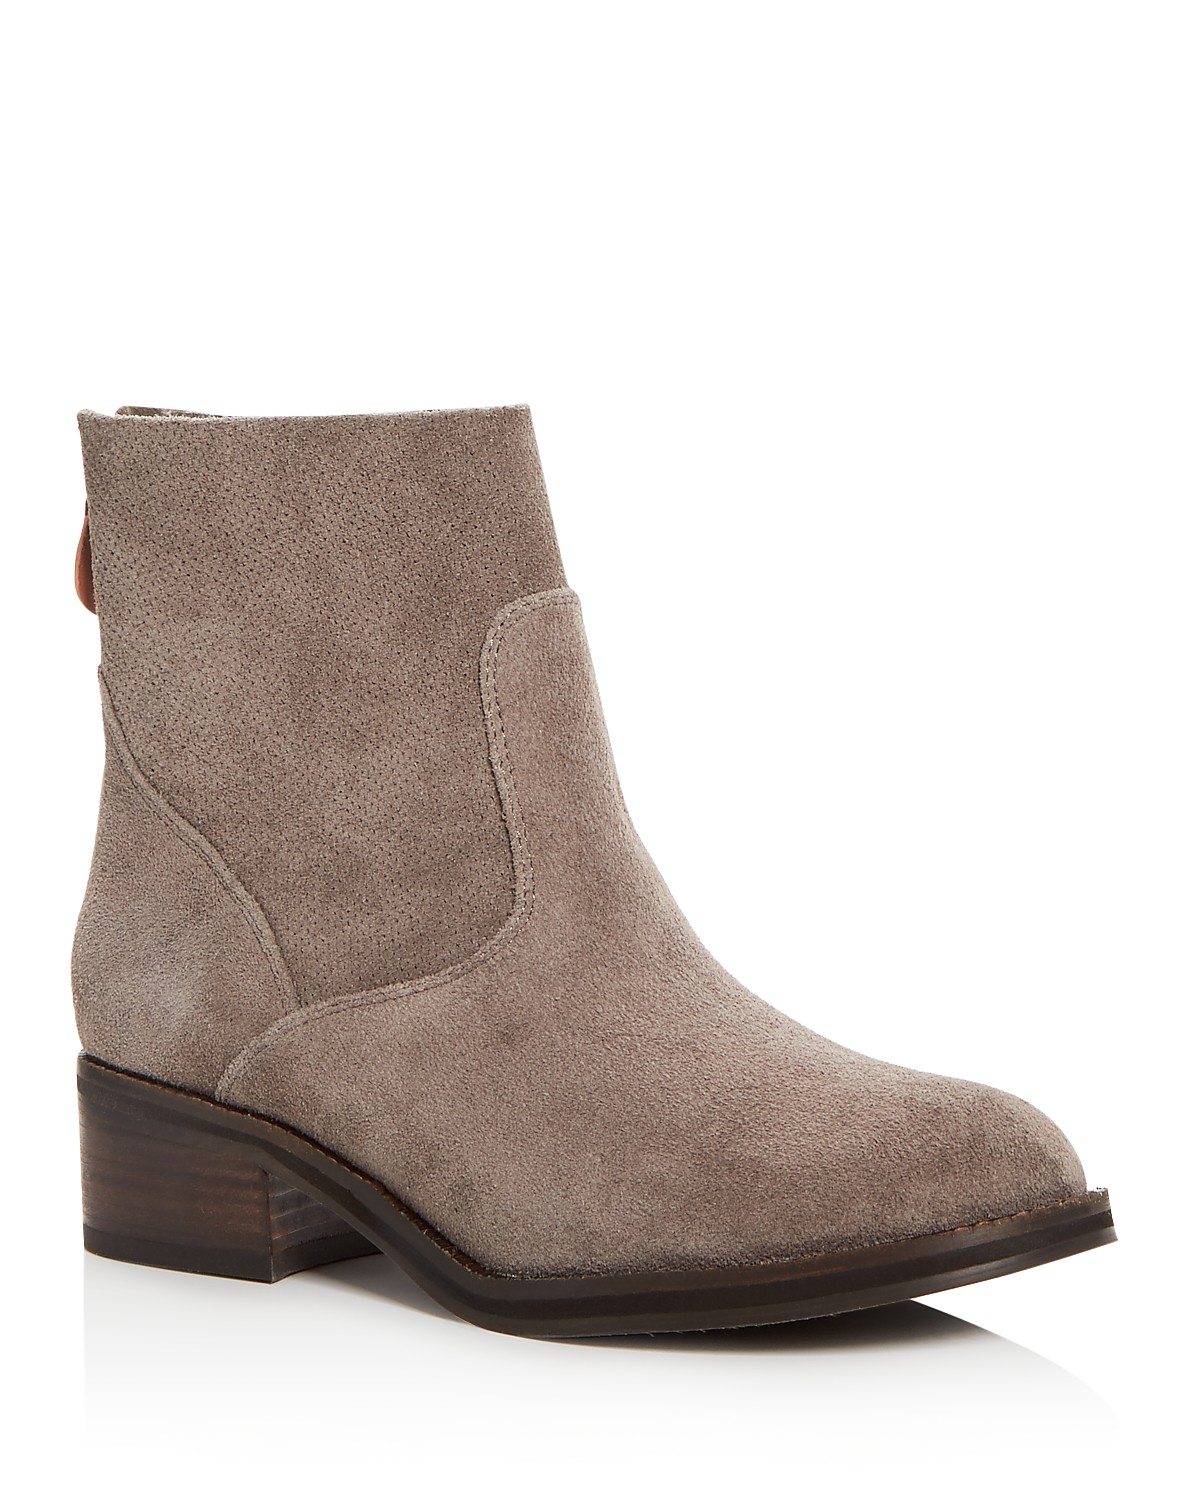 Free Shipping Original Free Shipping Outlet Store Kenneth Cole Gentle Souls Women's Parker Suede Low Heel Booties Deals Looking For Cheap Online Pictures Cheap Online 6RKNdGCW